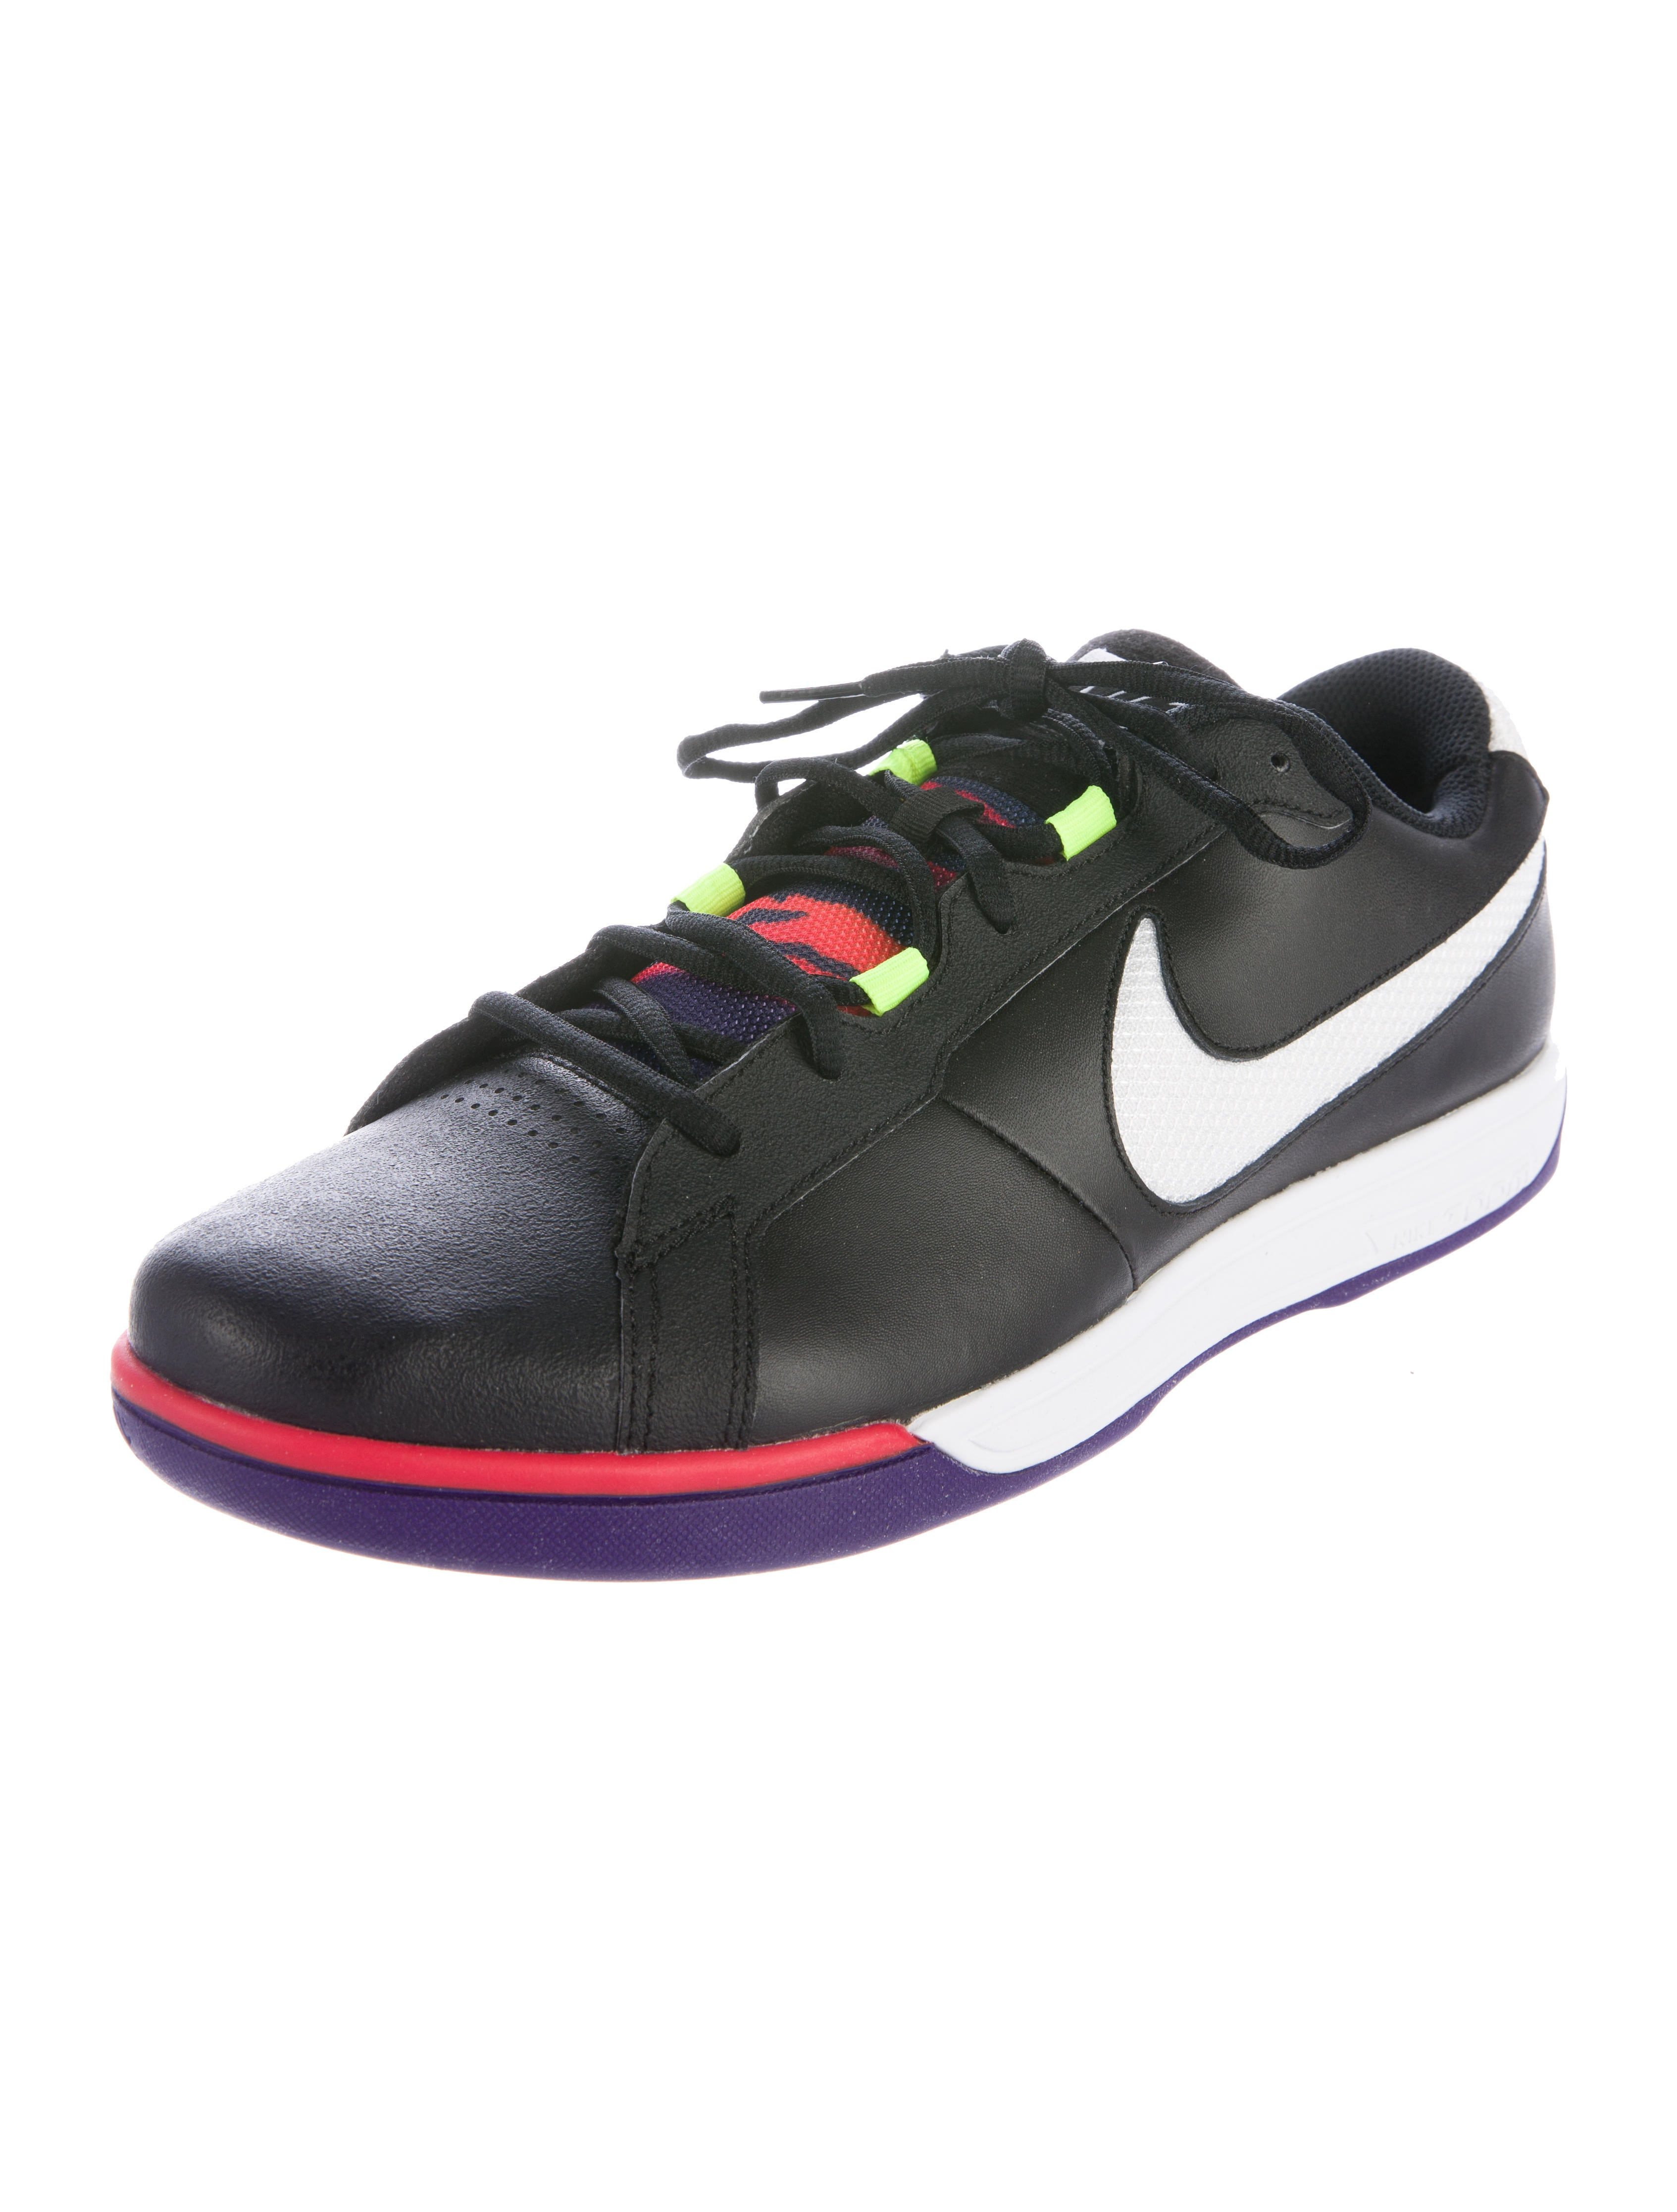 nike tennis classic sneakers shoes wu221333 the realreal. Black Bedroom Furniture Sets. Home Design Ideas